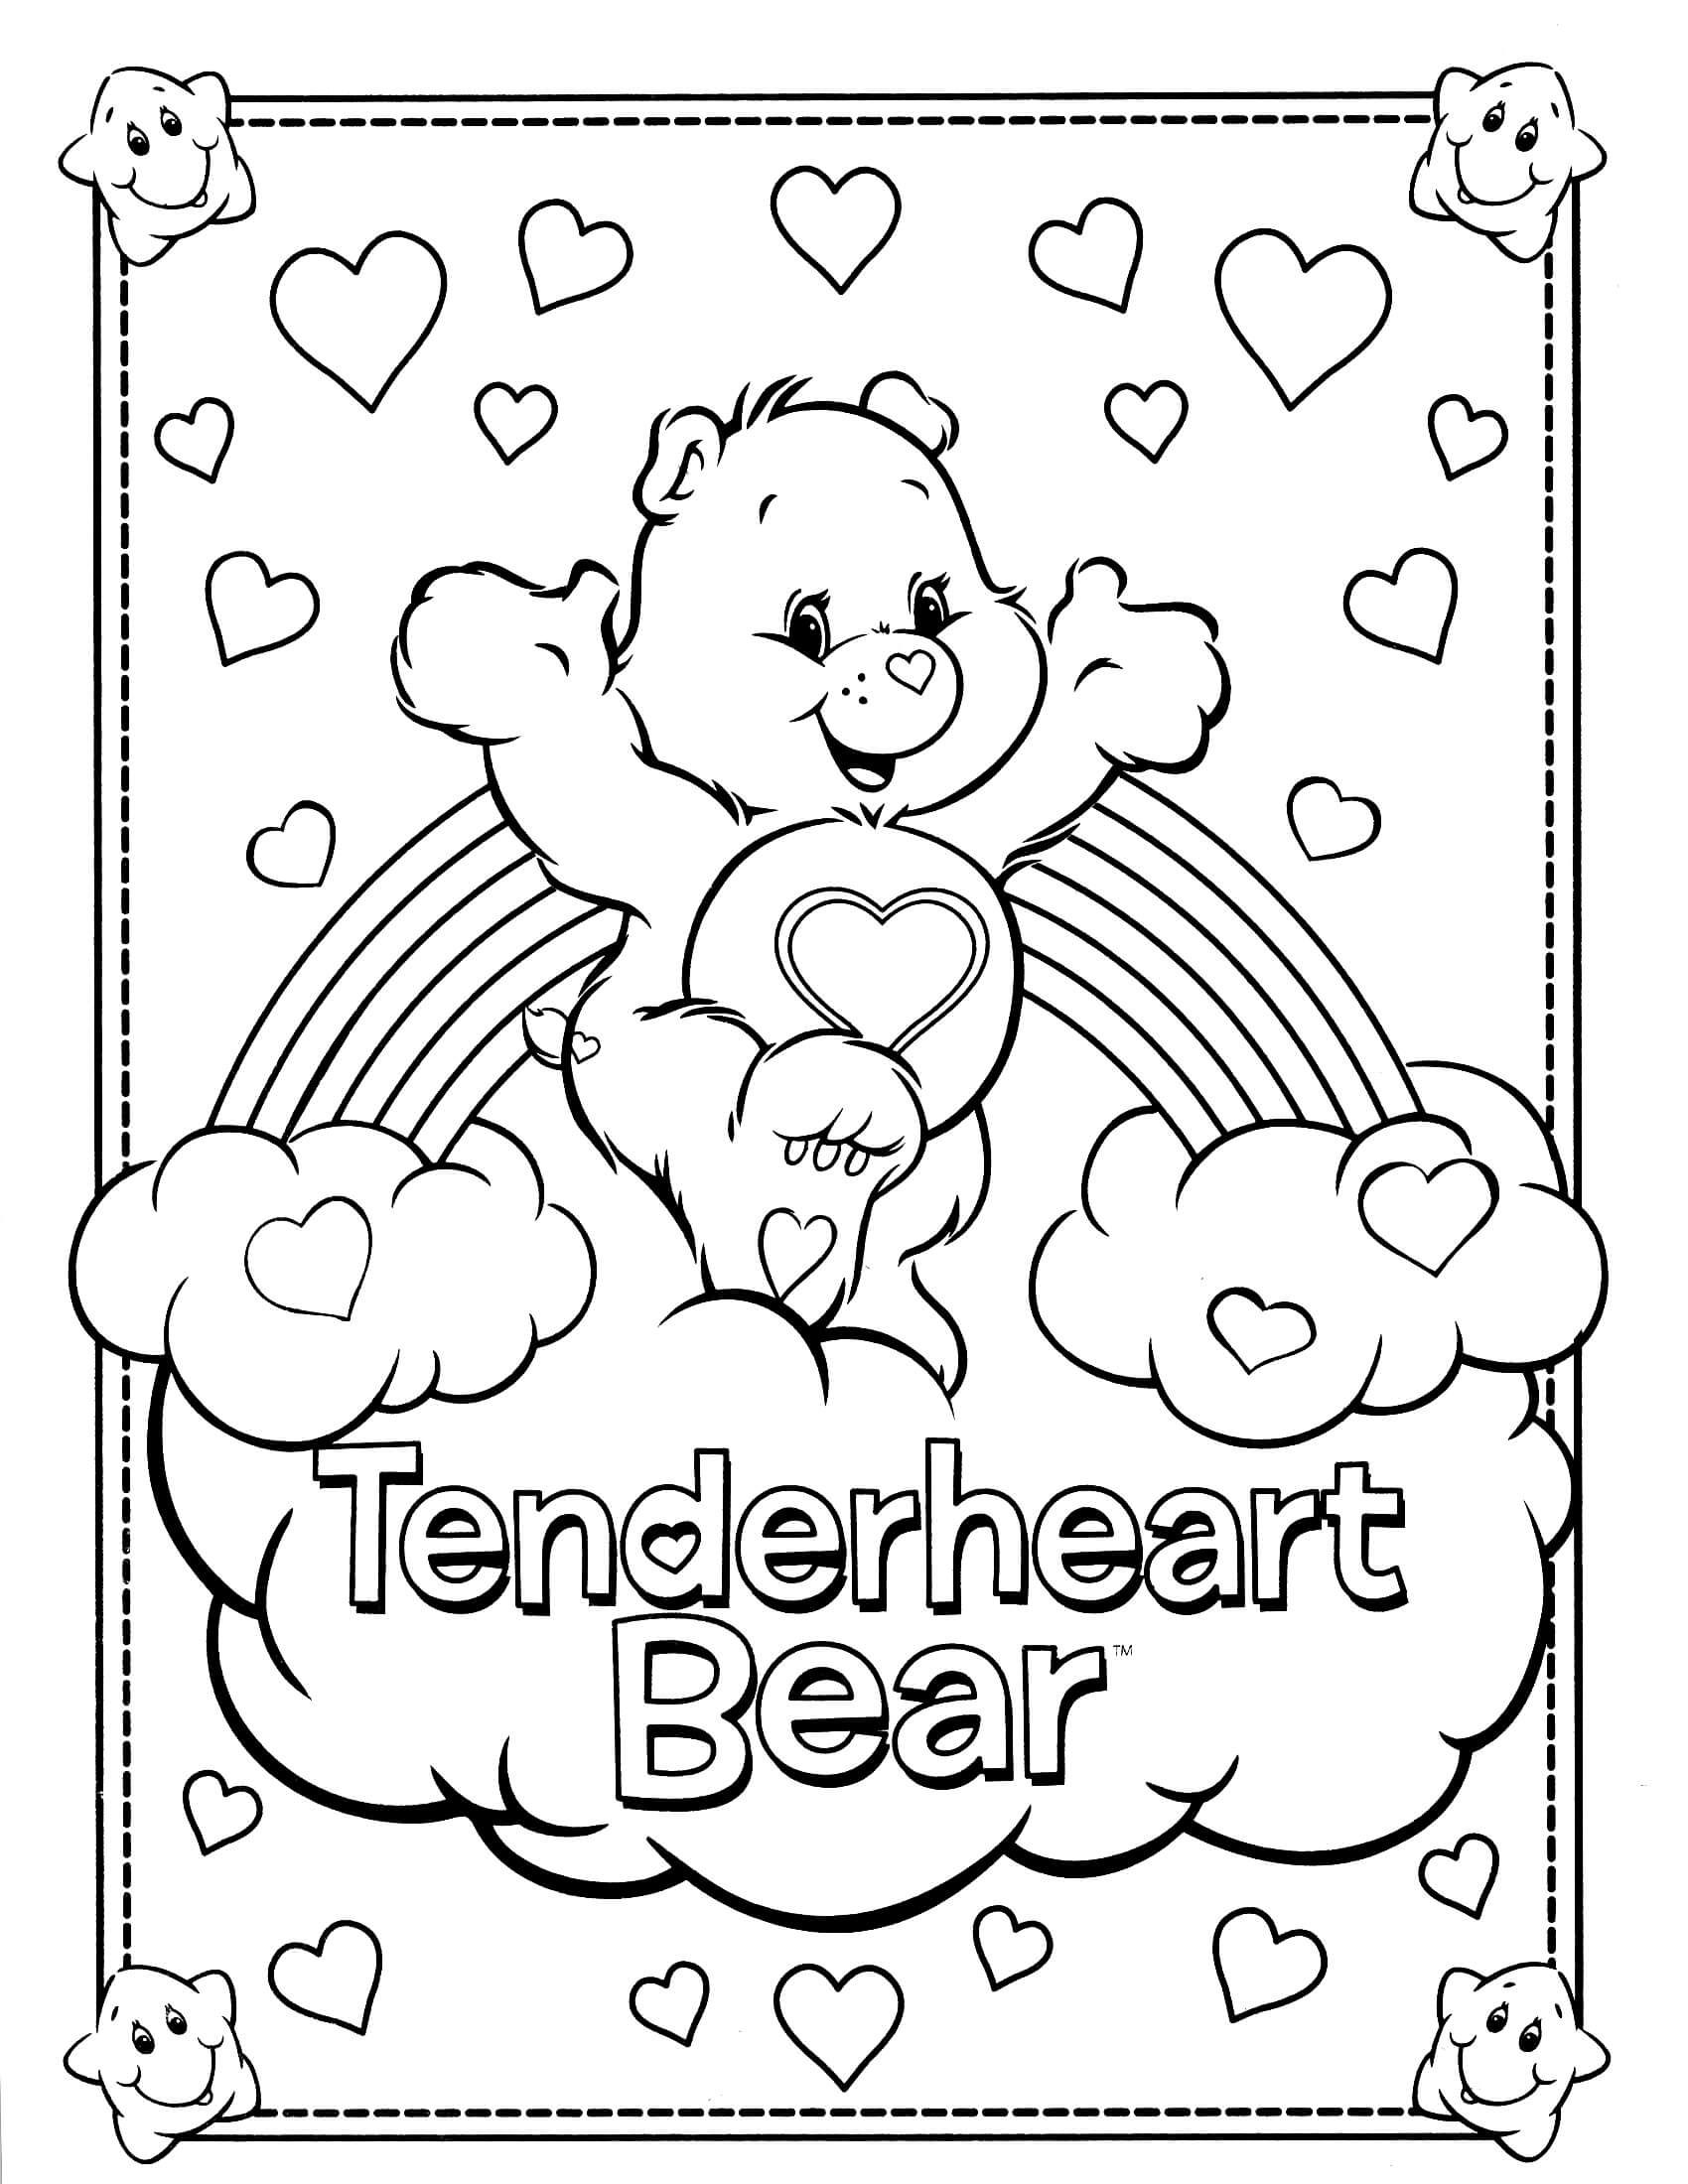 Tender Heart Bear Disney Coloring Pages Coloring Books